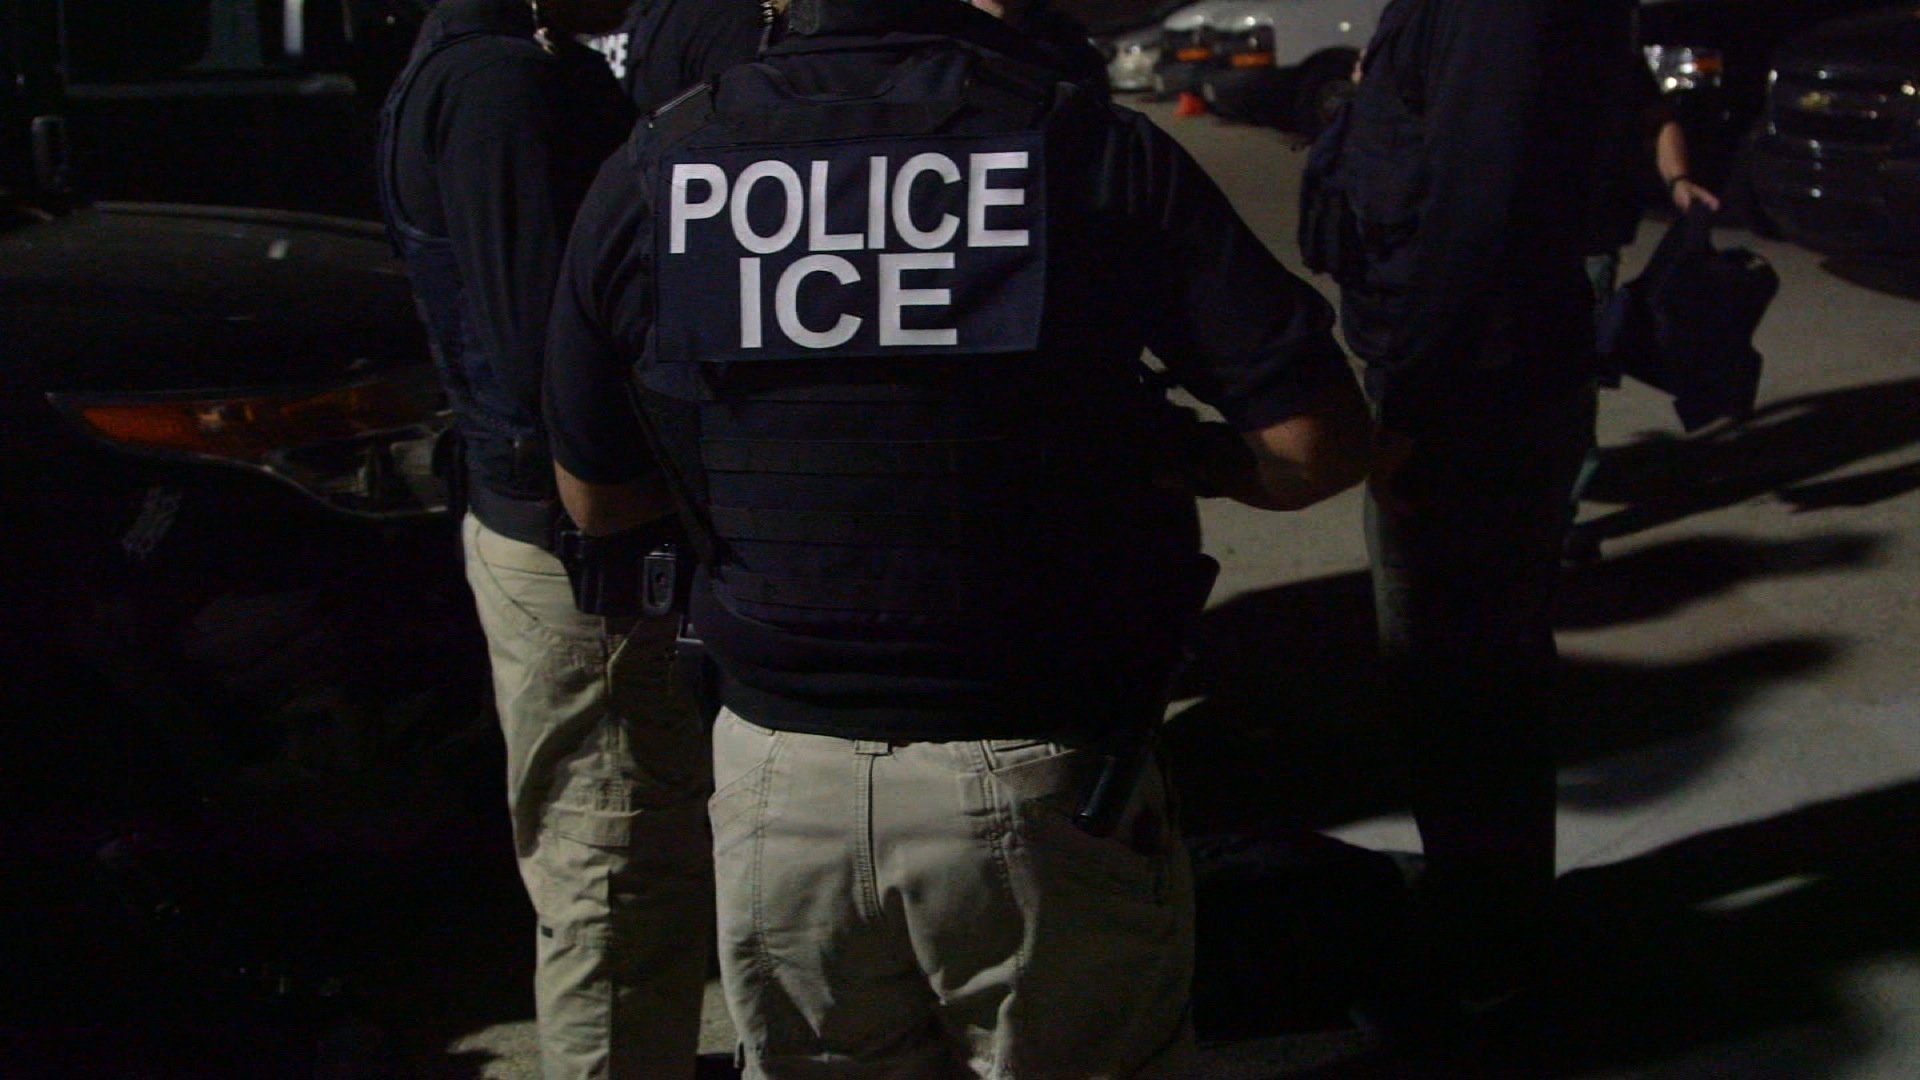 Hundreds Arrested in Immigration Raids on 'Sanctuary' Cities